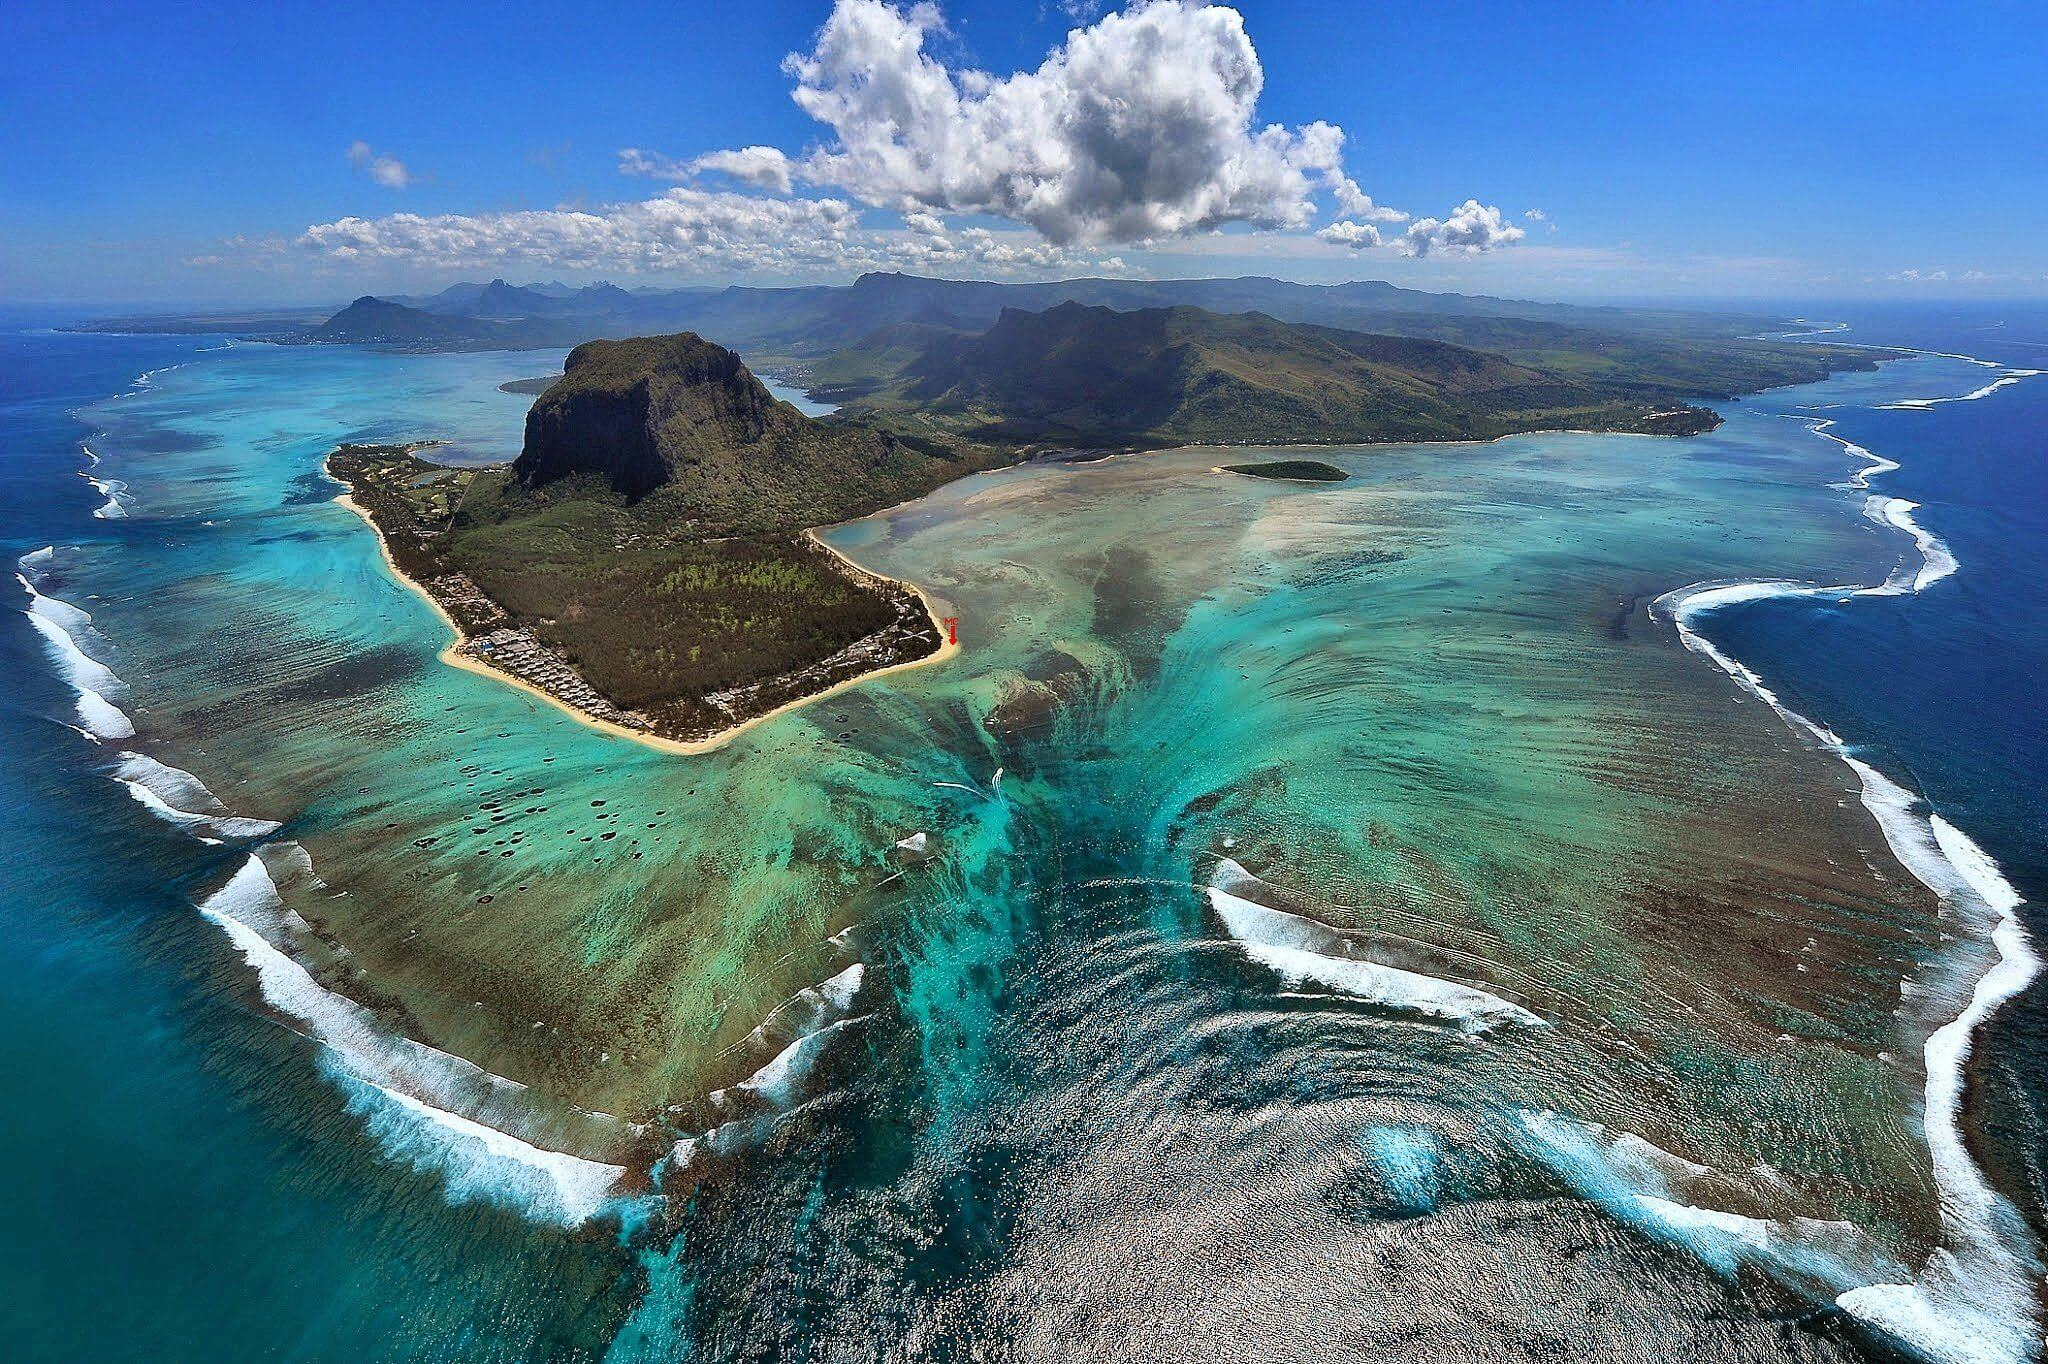 #12 Mauritius | Unbelievable Skydiving Sites | Image Source: zepelintour.ro